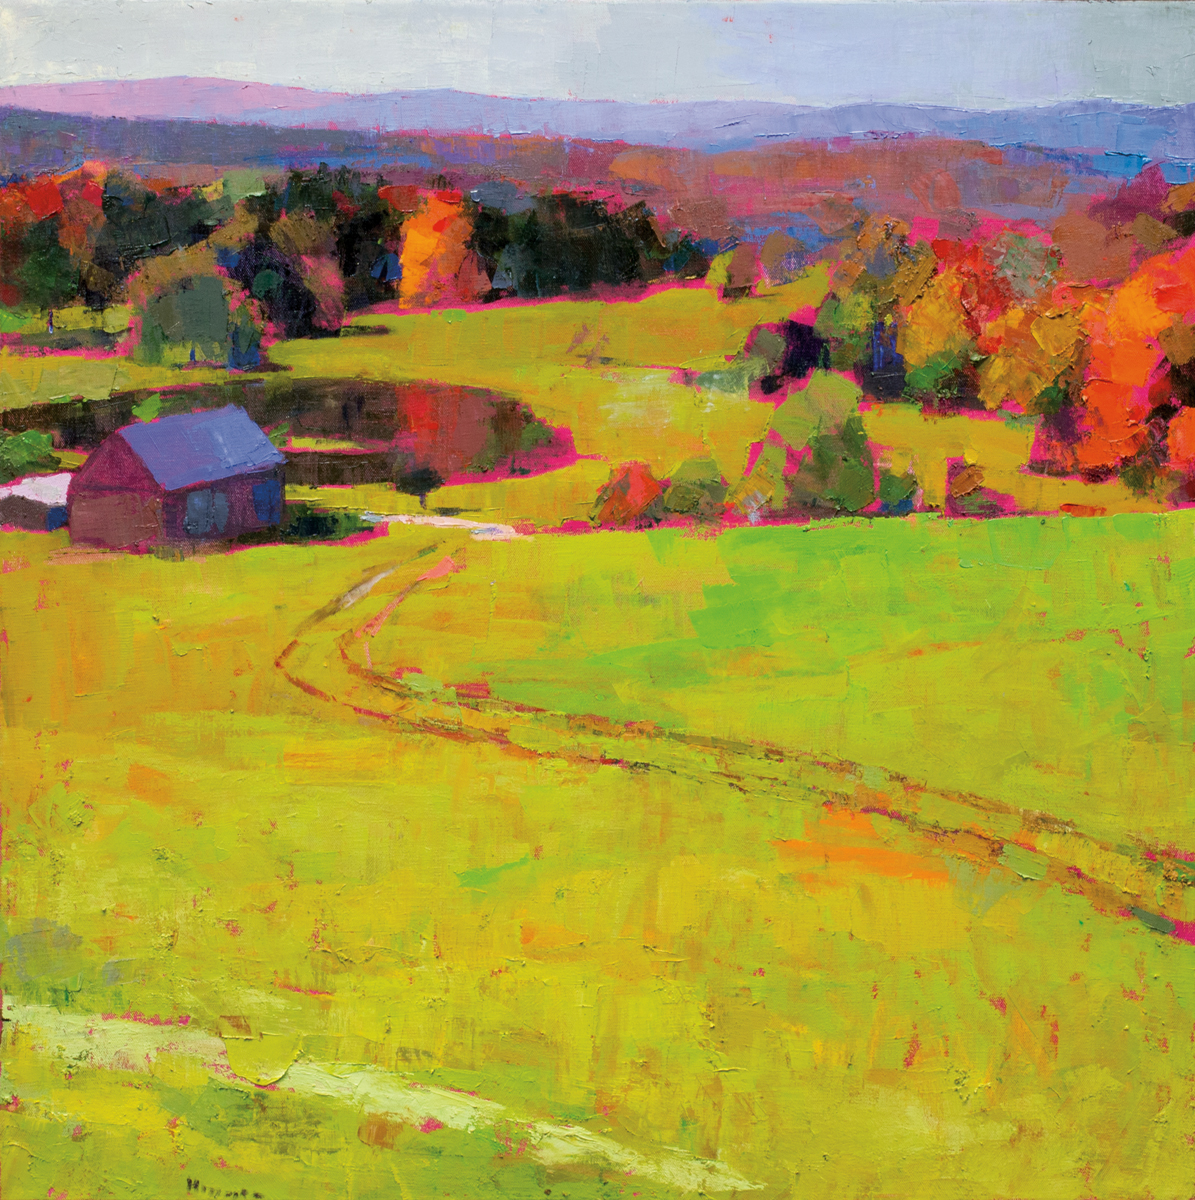 LARRY HOROWITZ, Chester Fall, oil on canvas, 39 x 39 in, 2016